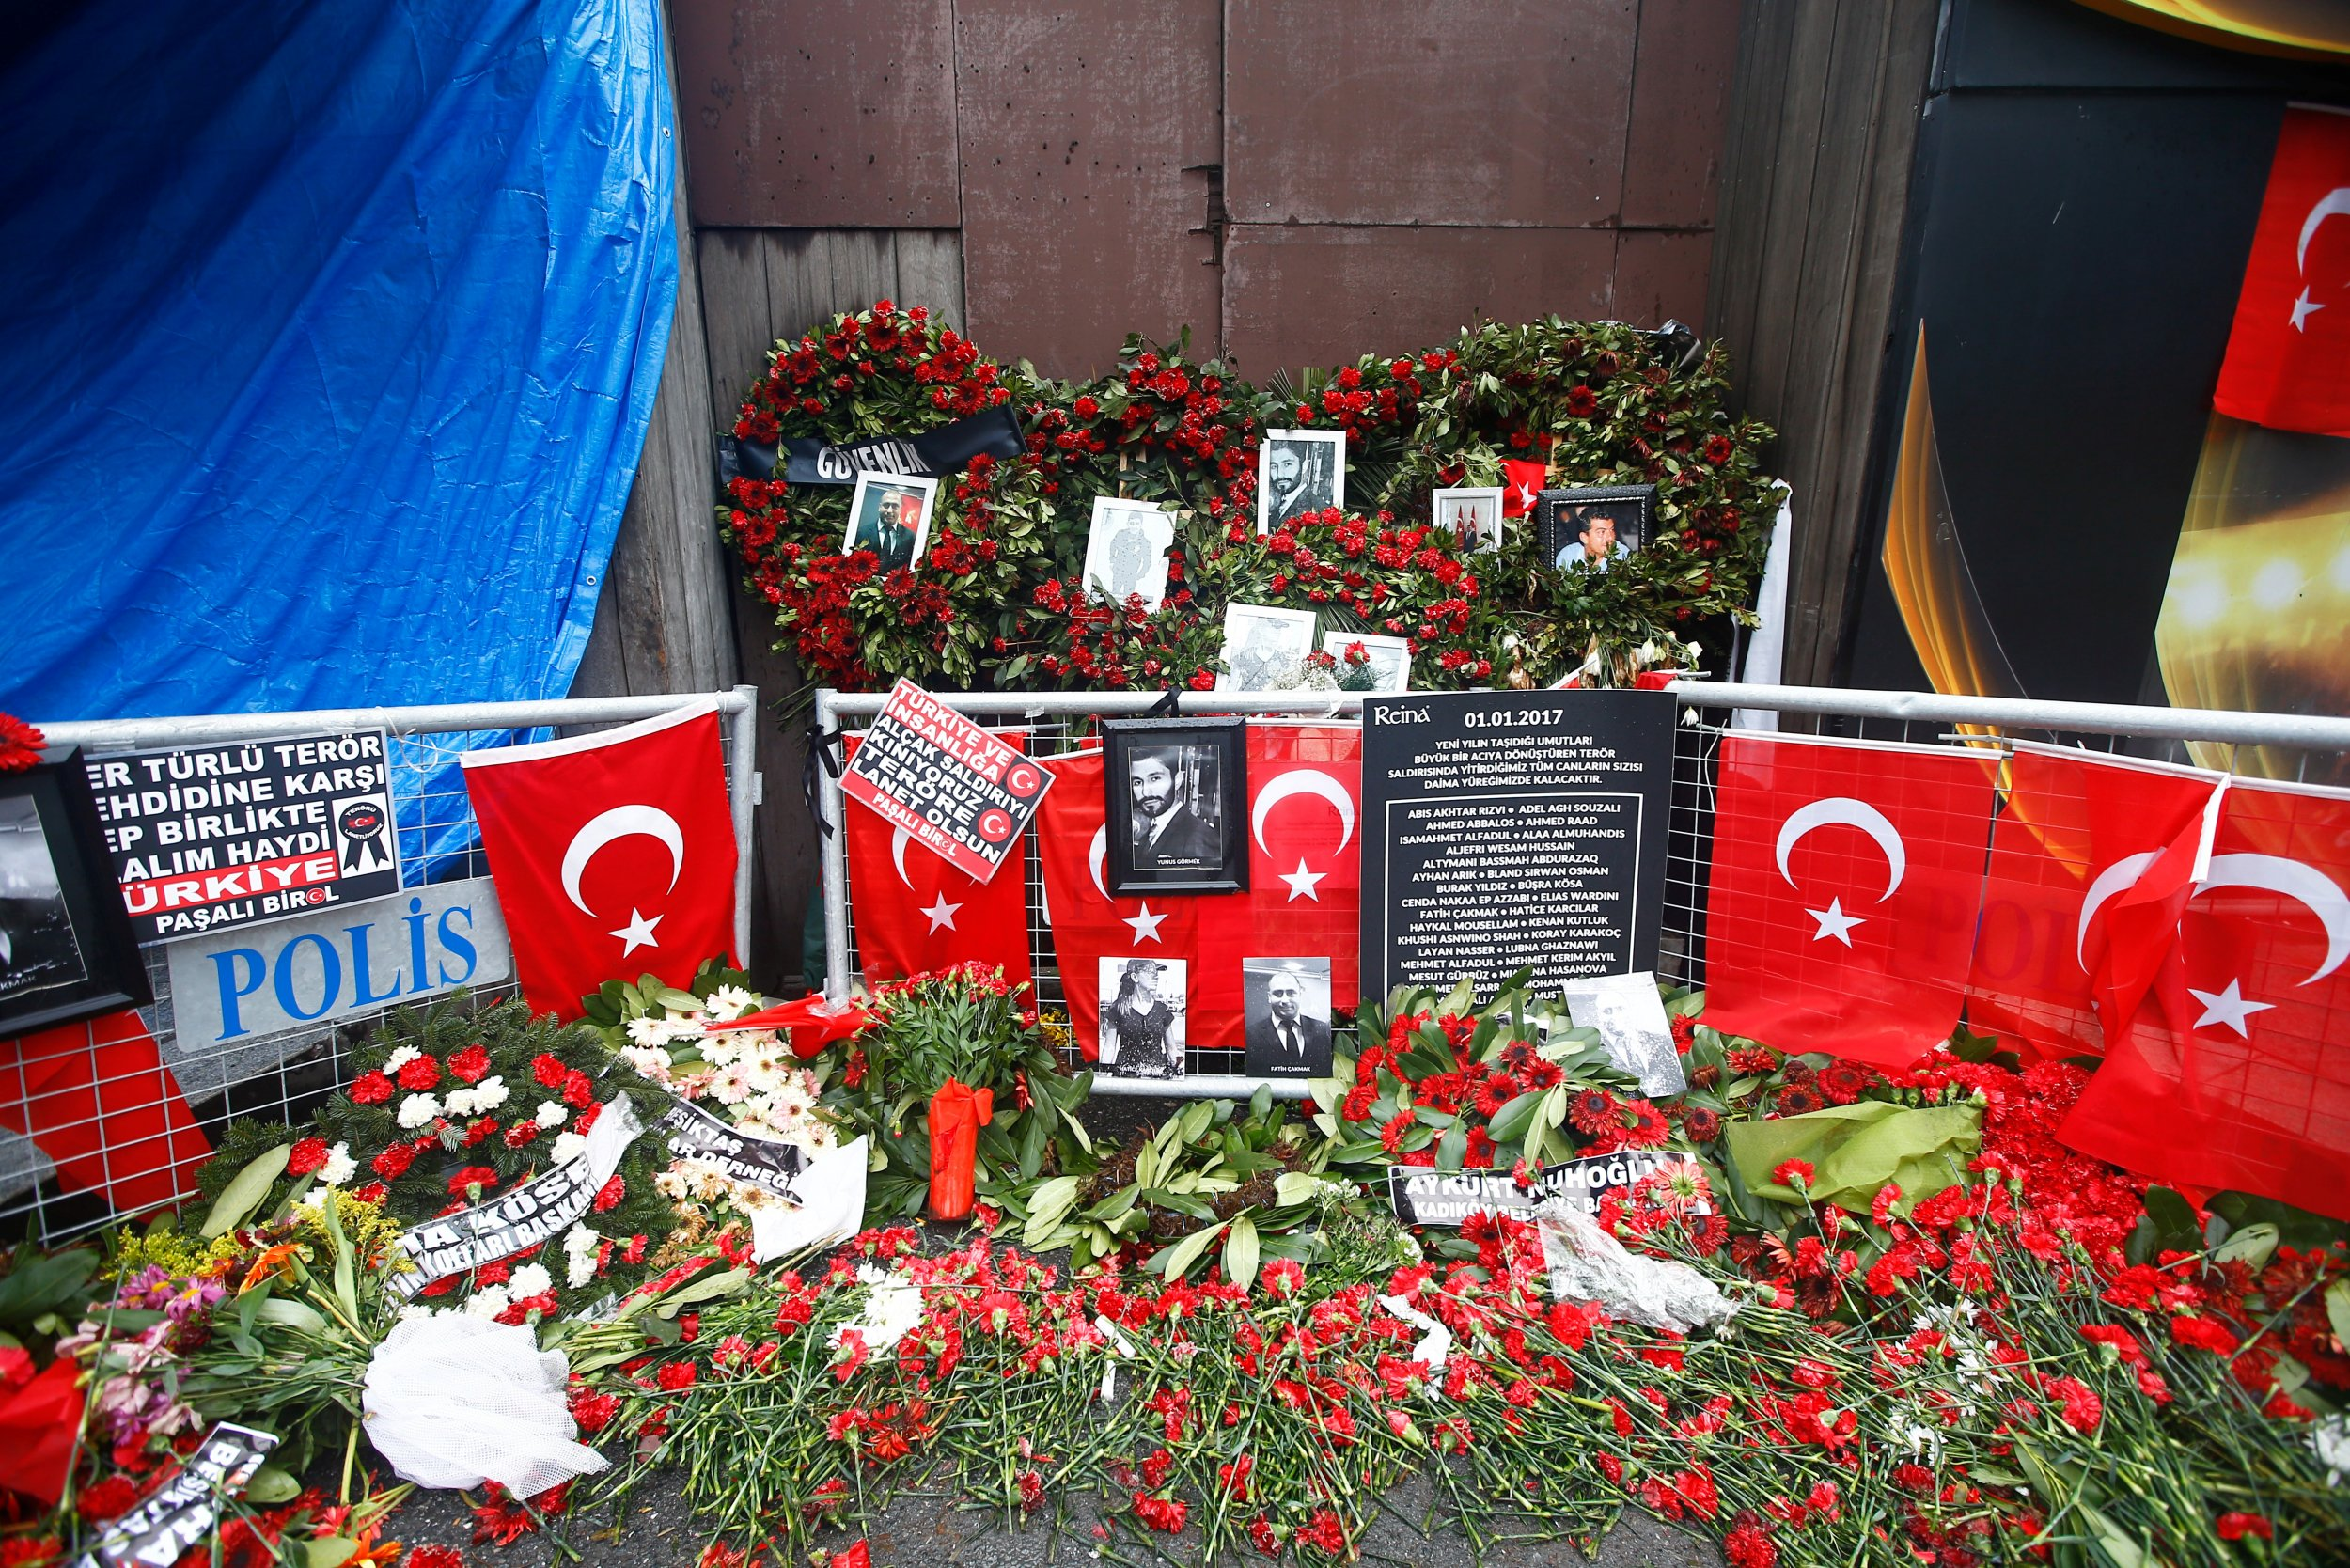 Homage to the Istanbul Nightclub victims